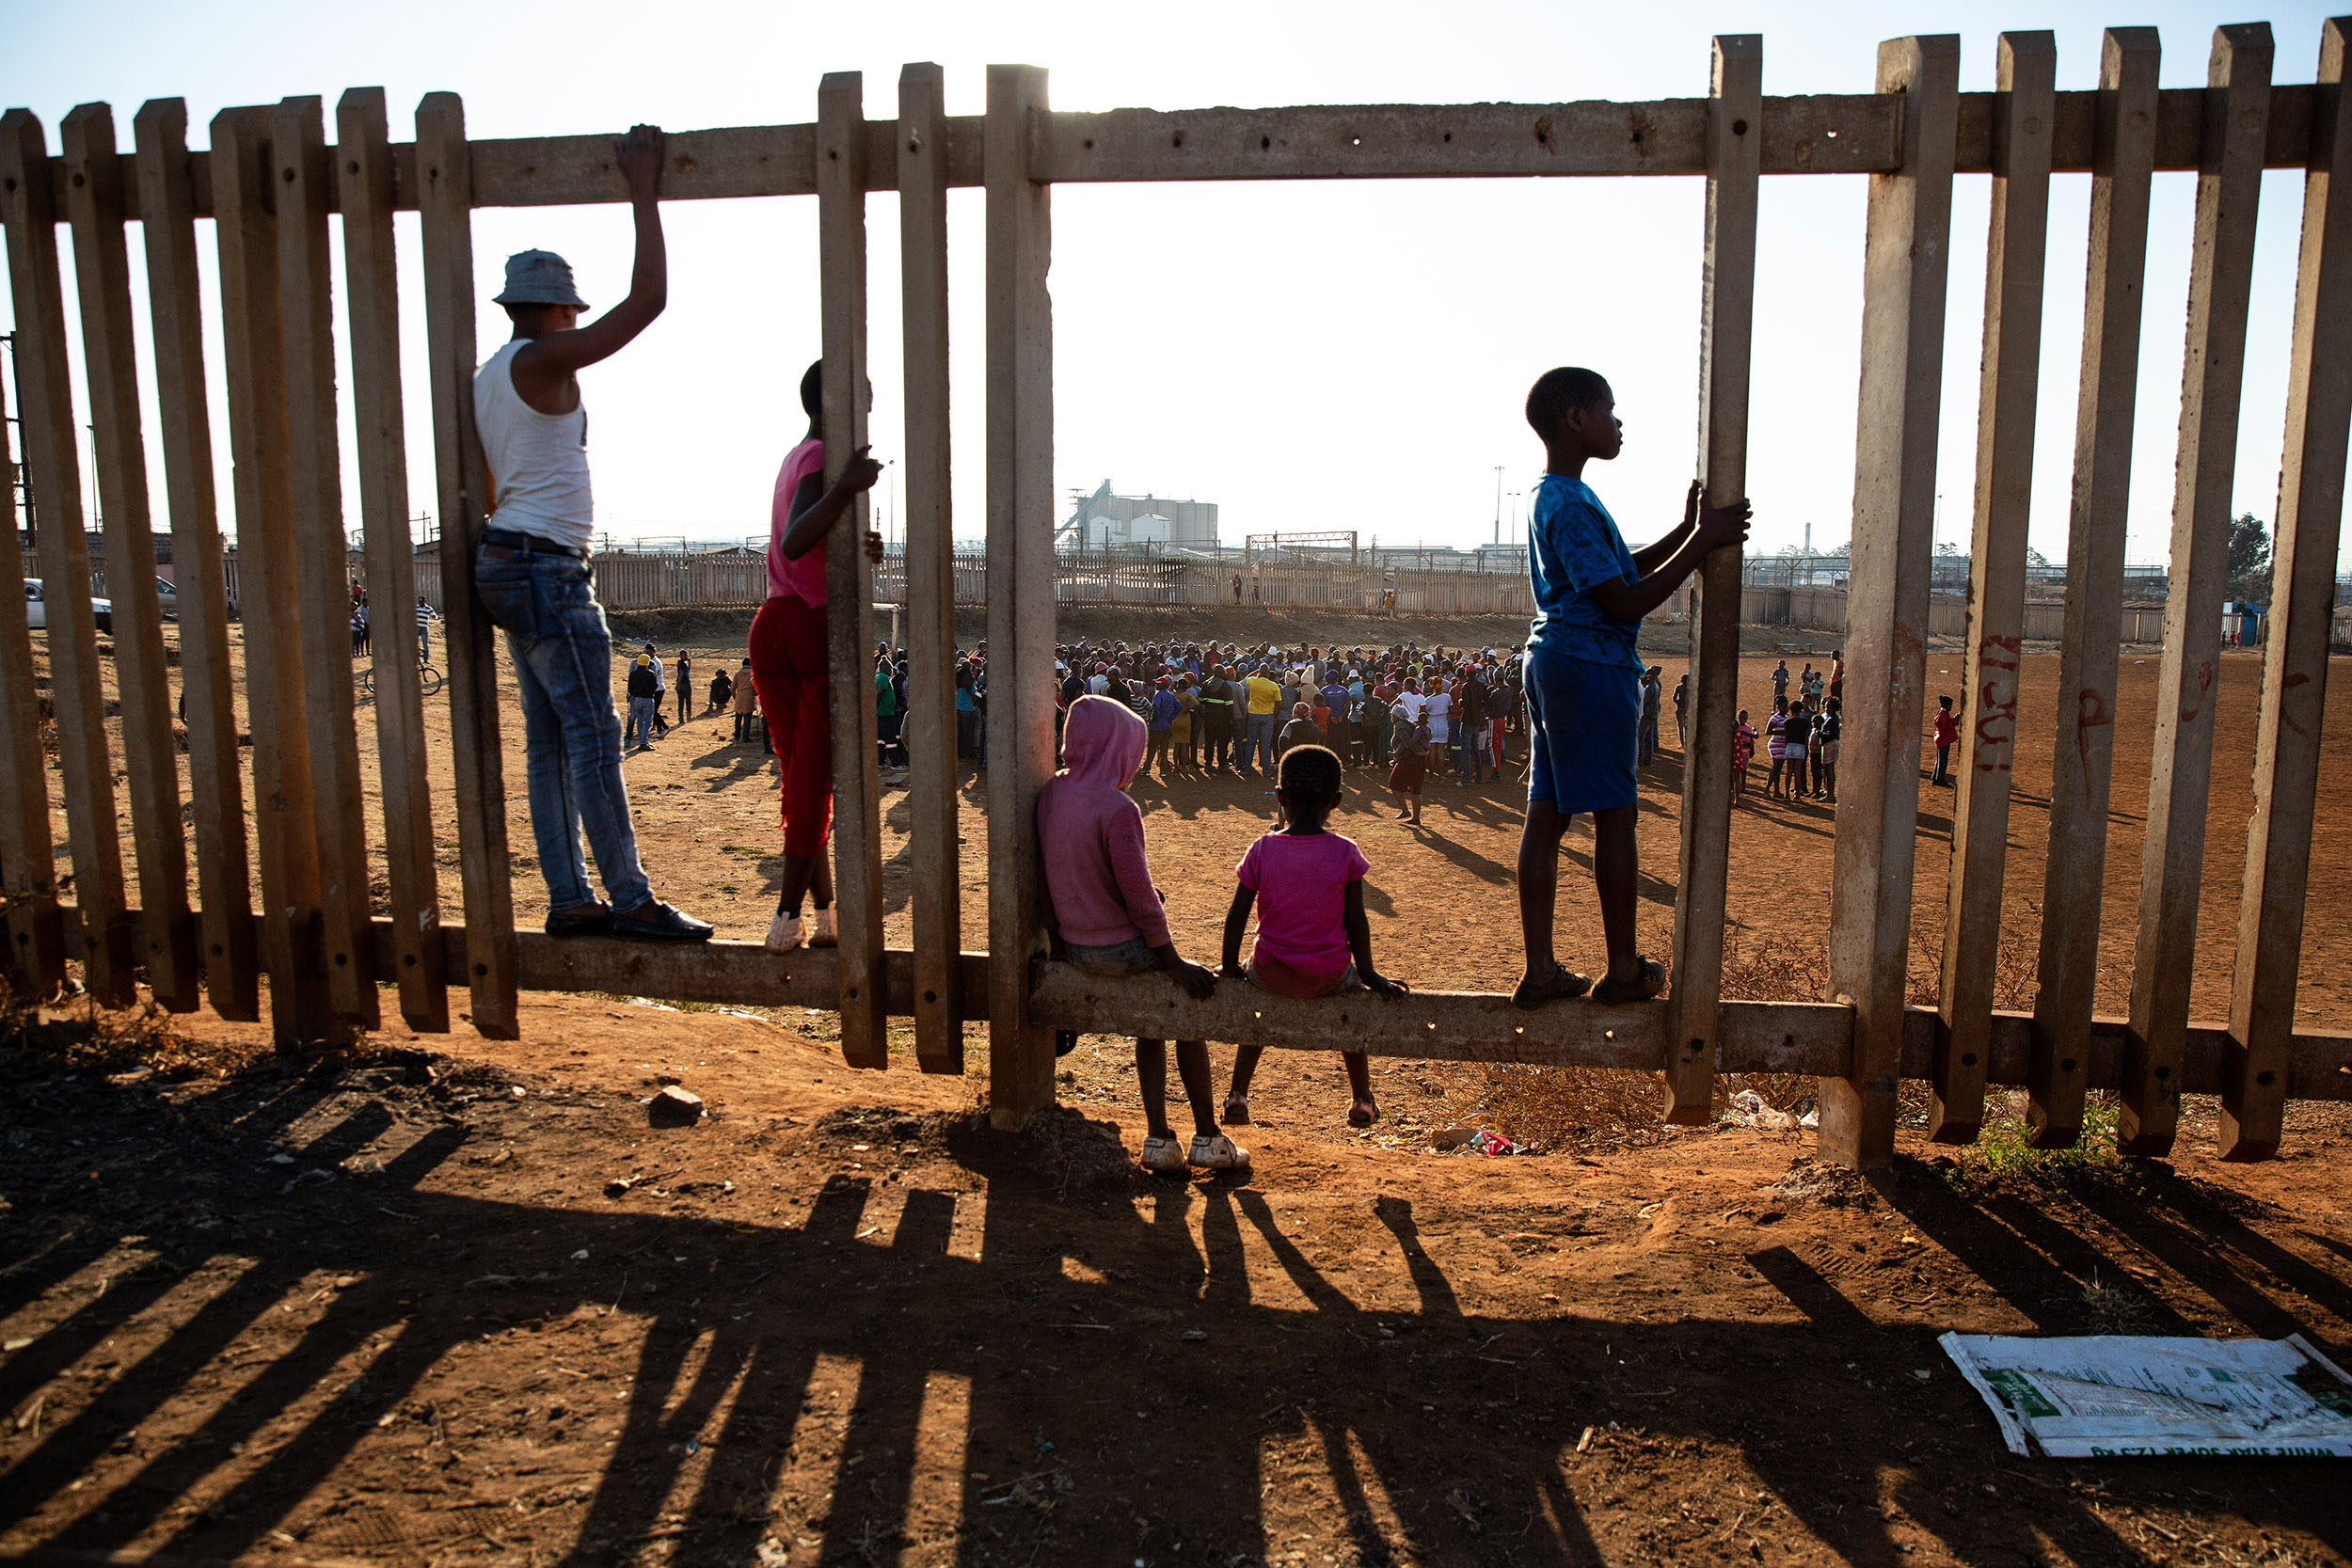 7 July 2020: Children watch the meeting taking place at a football field in Thokoza. A group of men marched in the township after taking part in the trucker's strike. Xenophobic speech and threats towards migrants from other African countries characterised the protest.